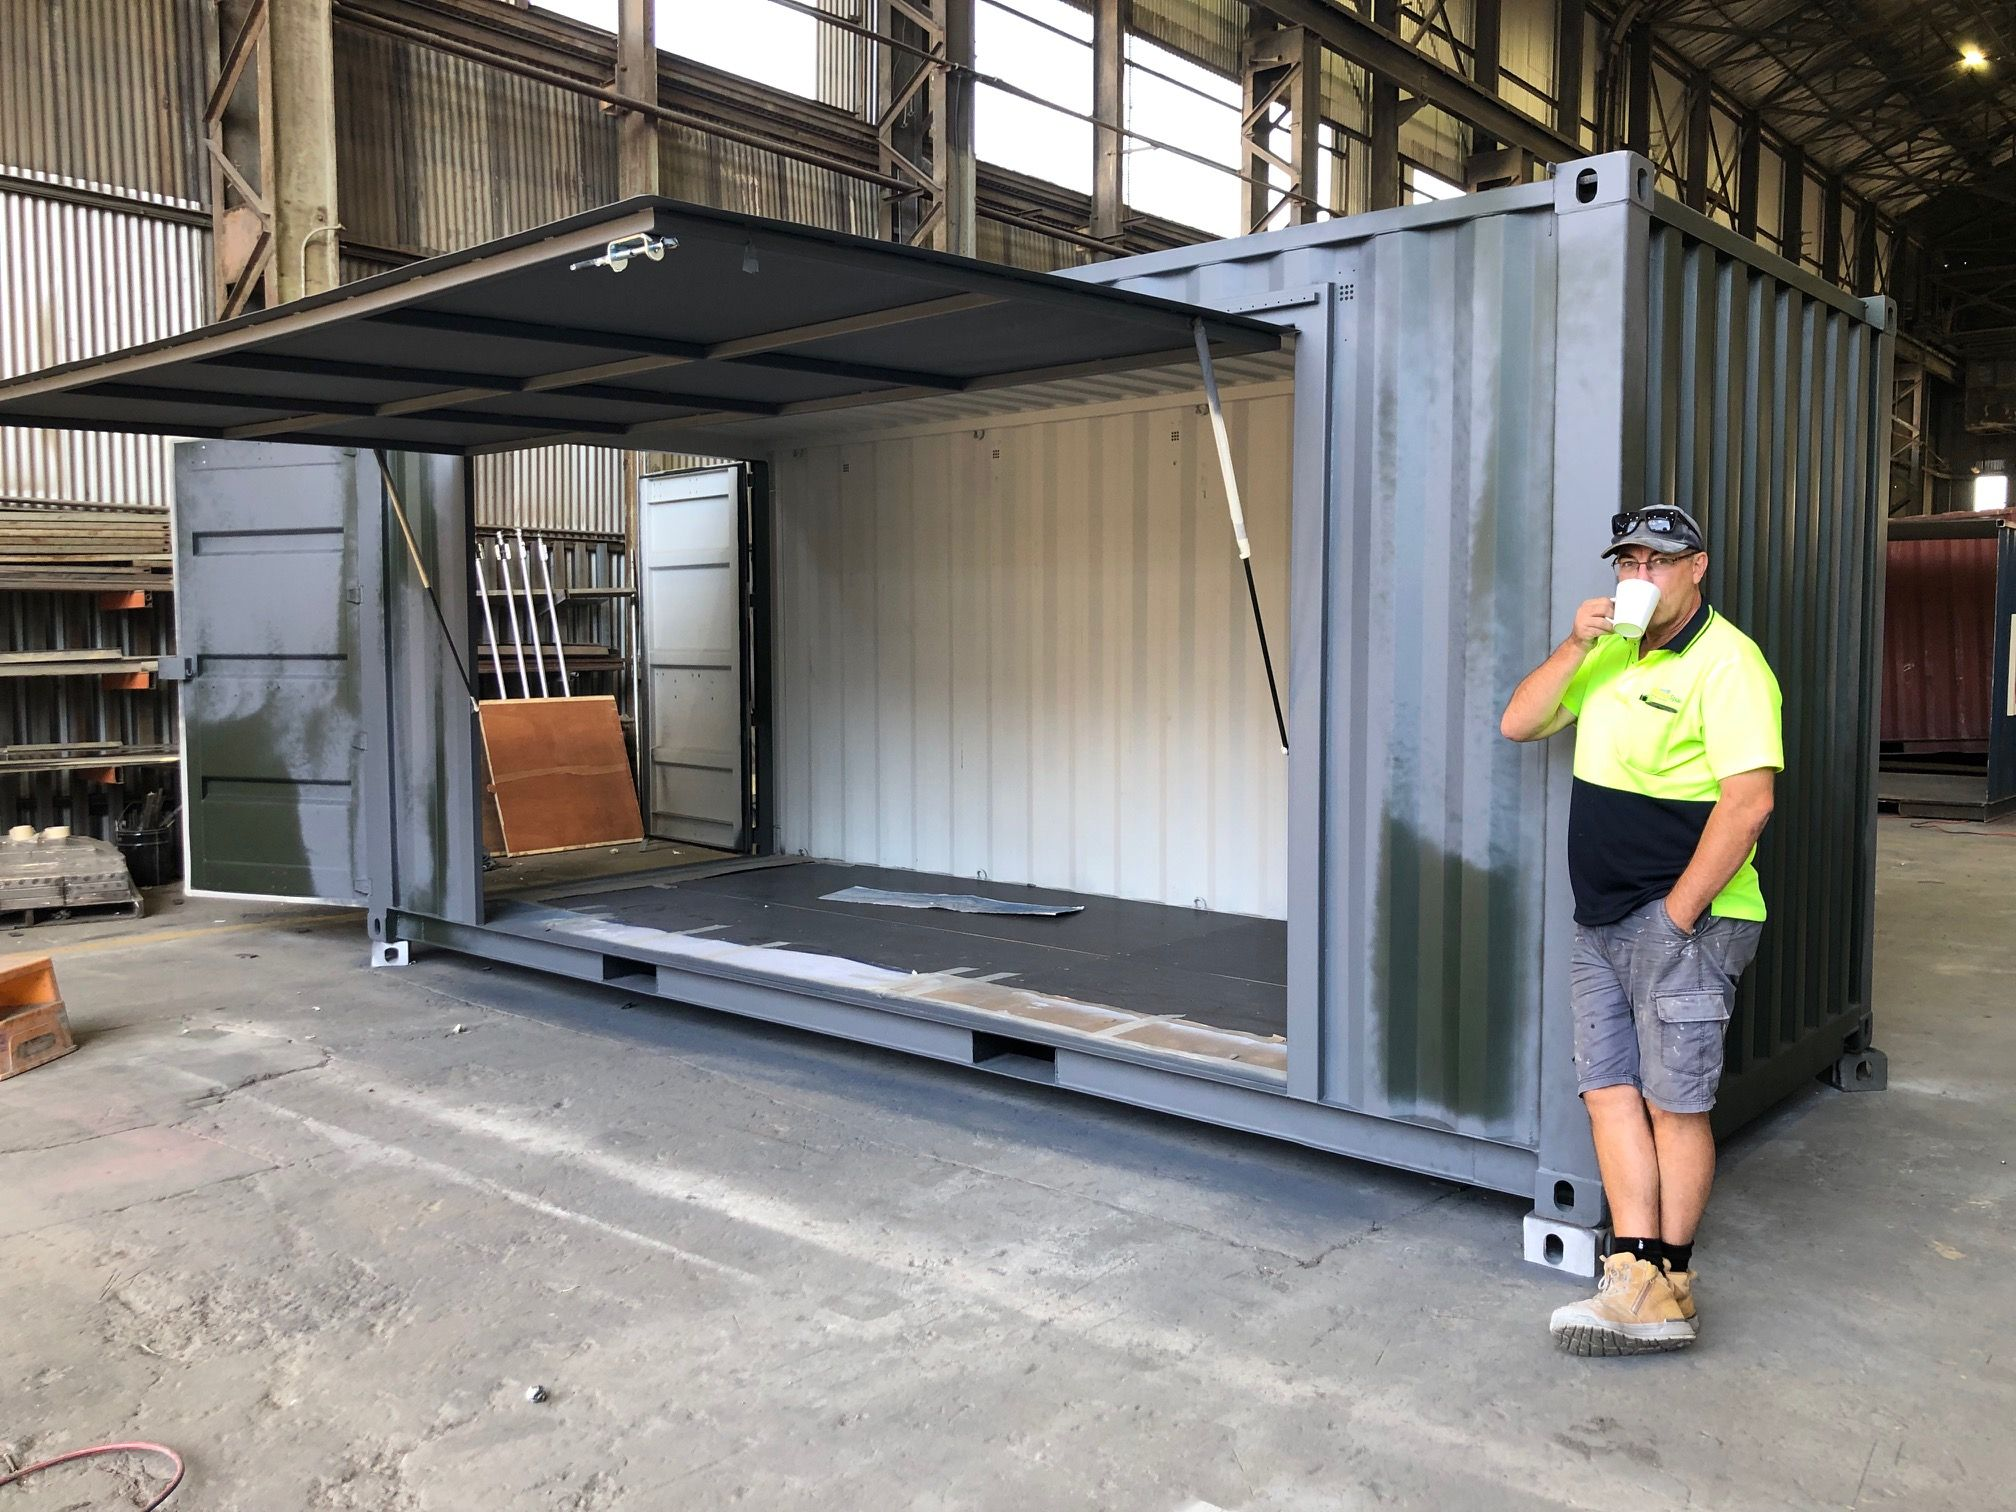 Shipping Containers For Sale In Melbourne Containerspace Shipping Containers For Sale Containers For Sale Shop Building Plans